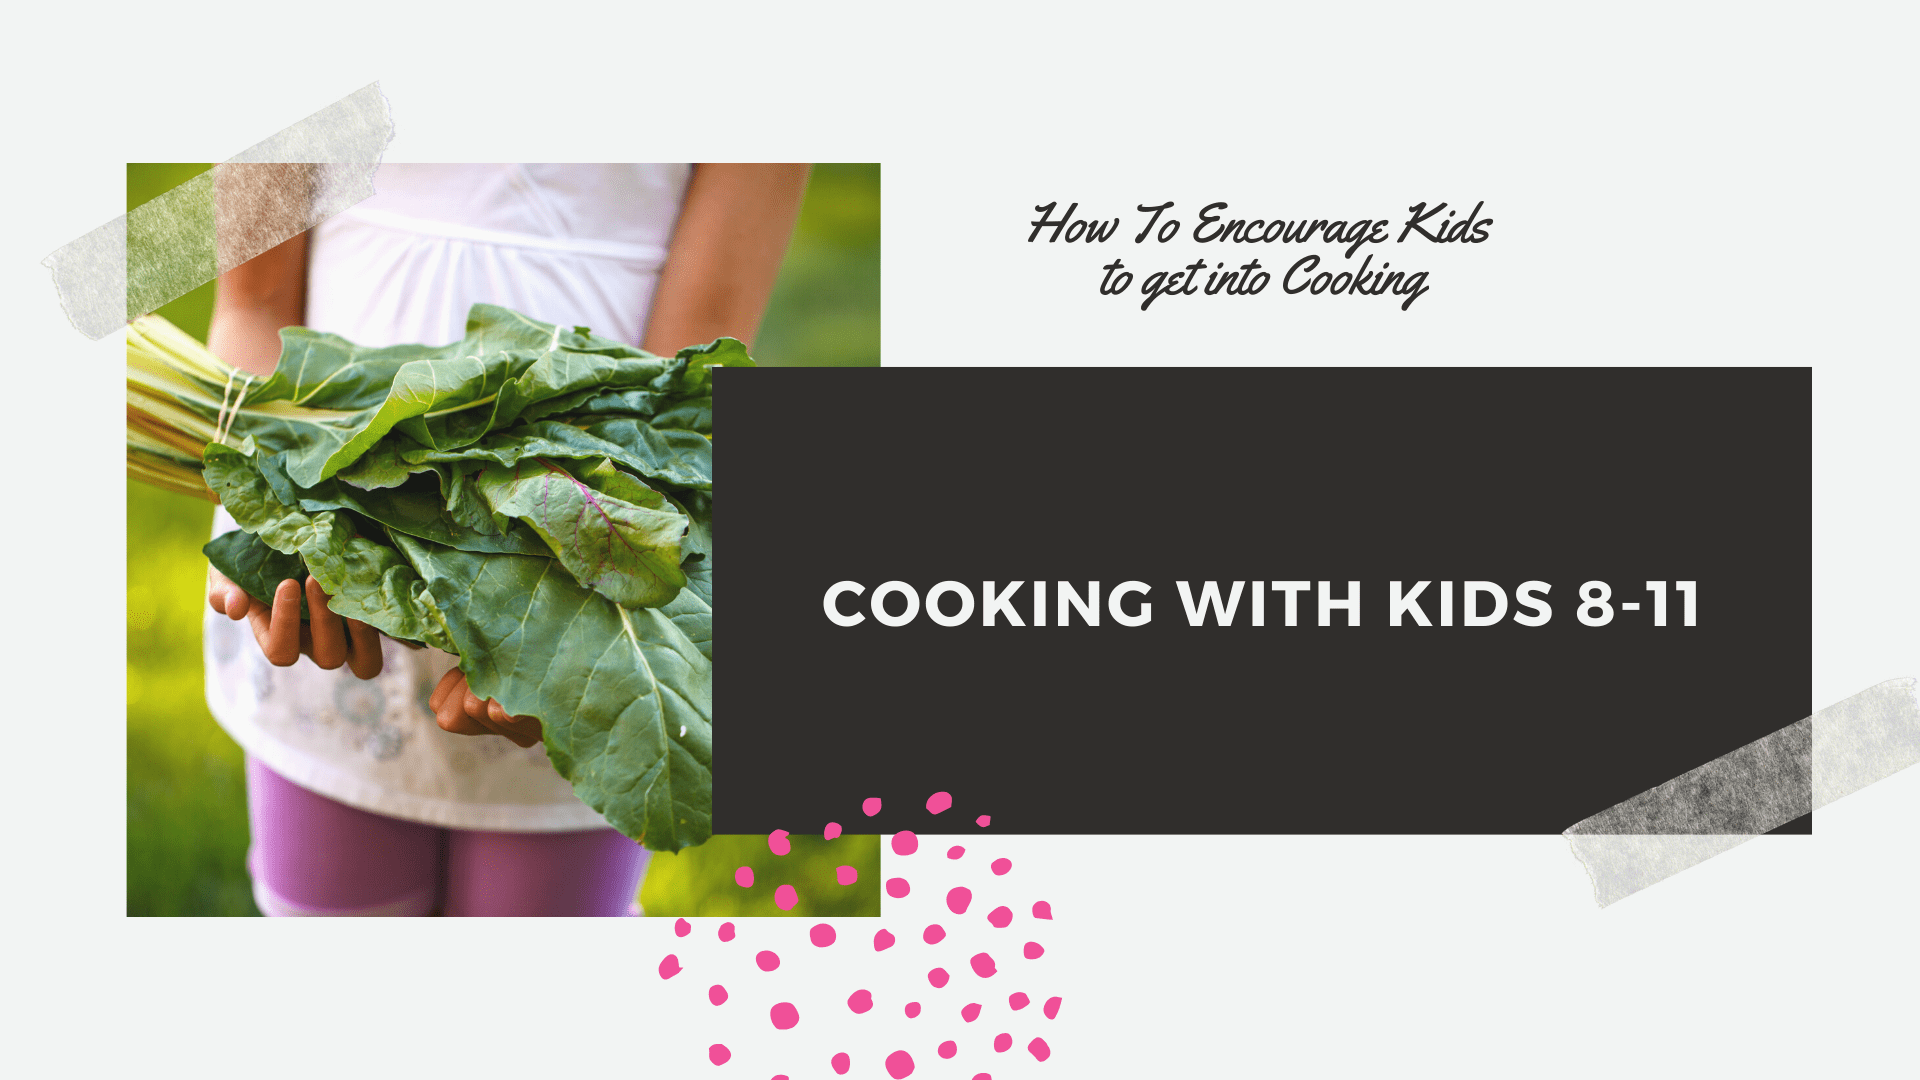 How to encourage kids to get into cooking